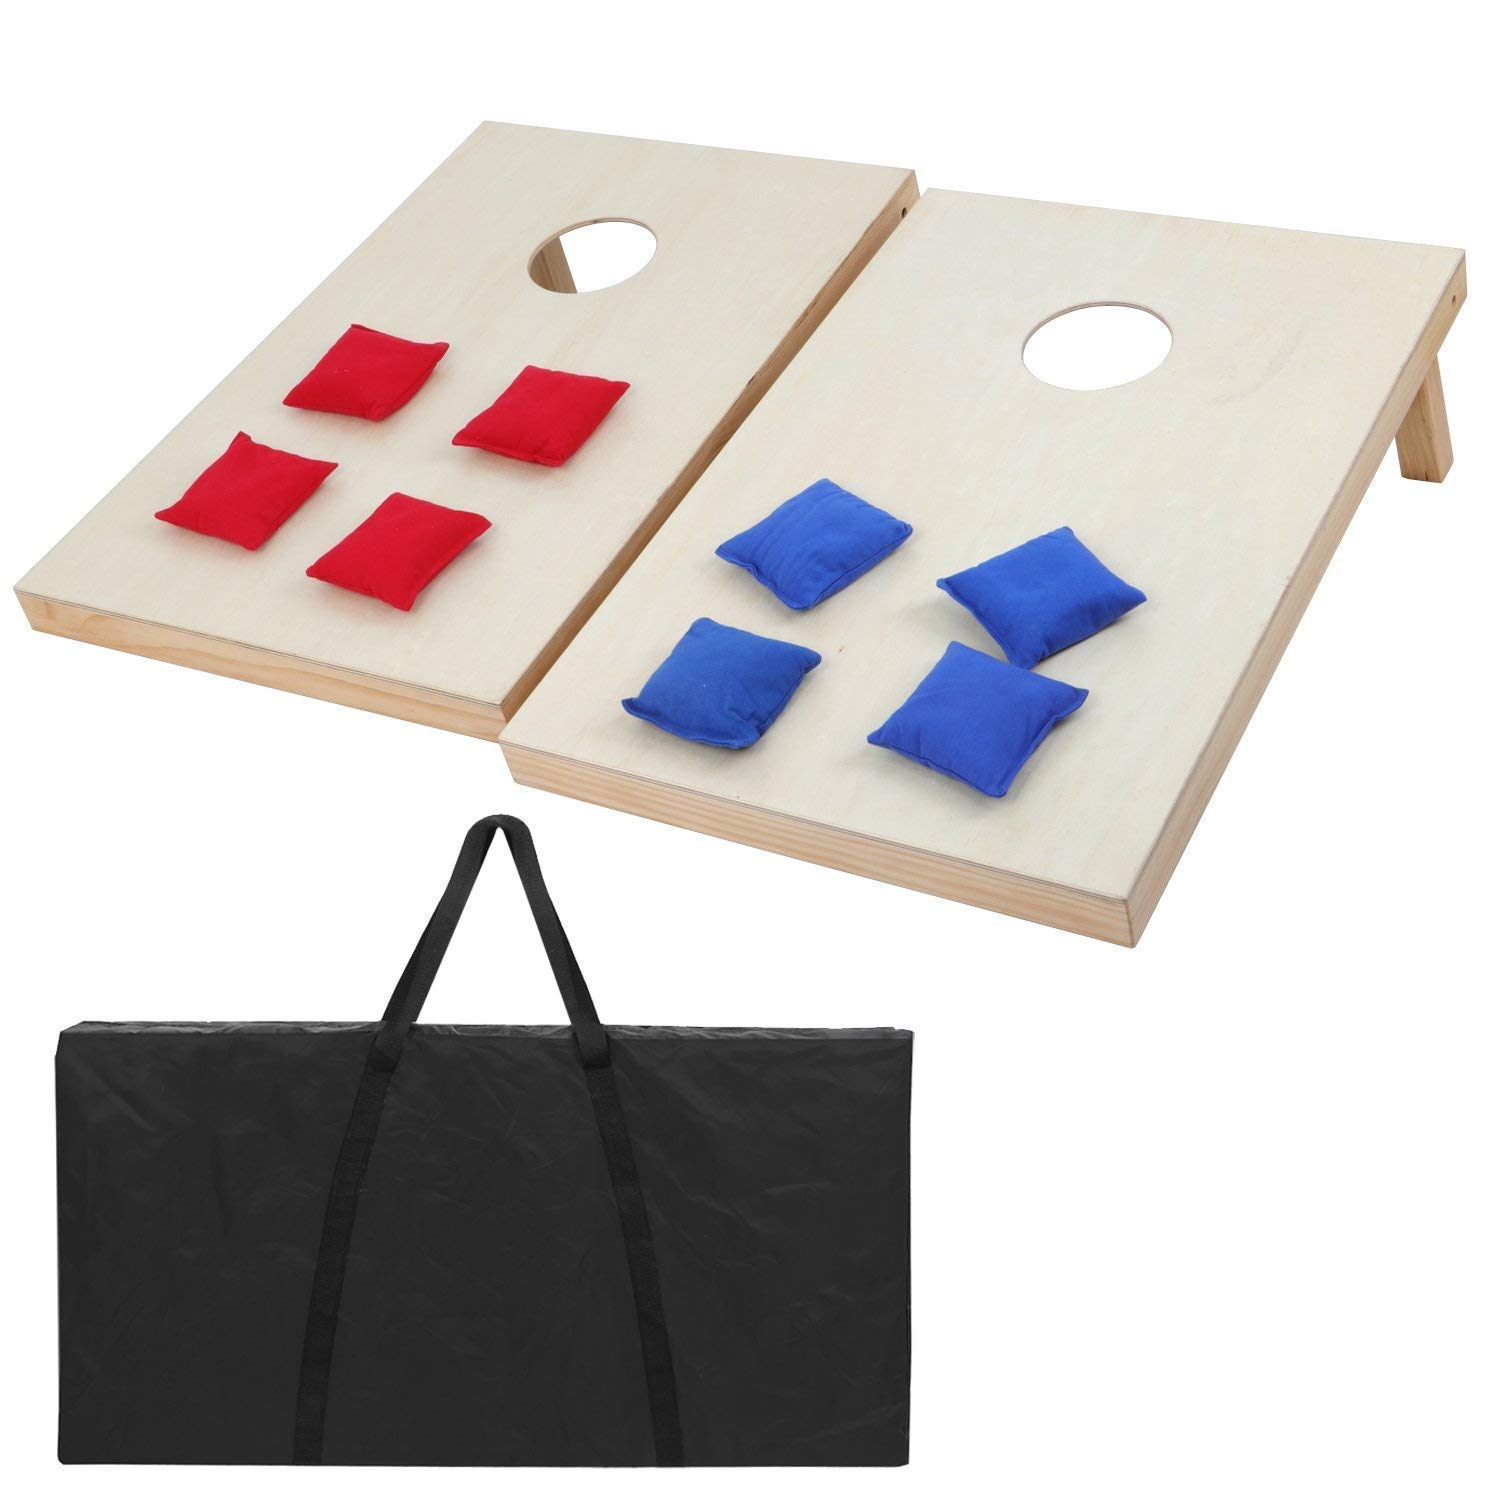 F2C Portable Foldable Aluminum Framed Bean Bag CornHole Toss Game Set Boards with 8 Bean Bags and Carrying Case Classic Red& Blue to Choose